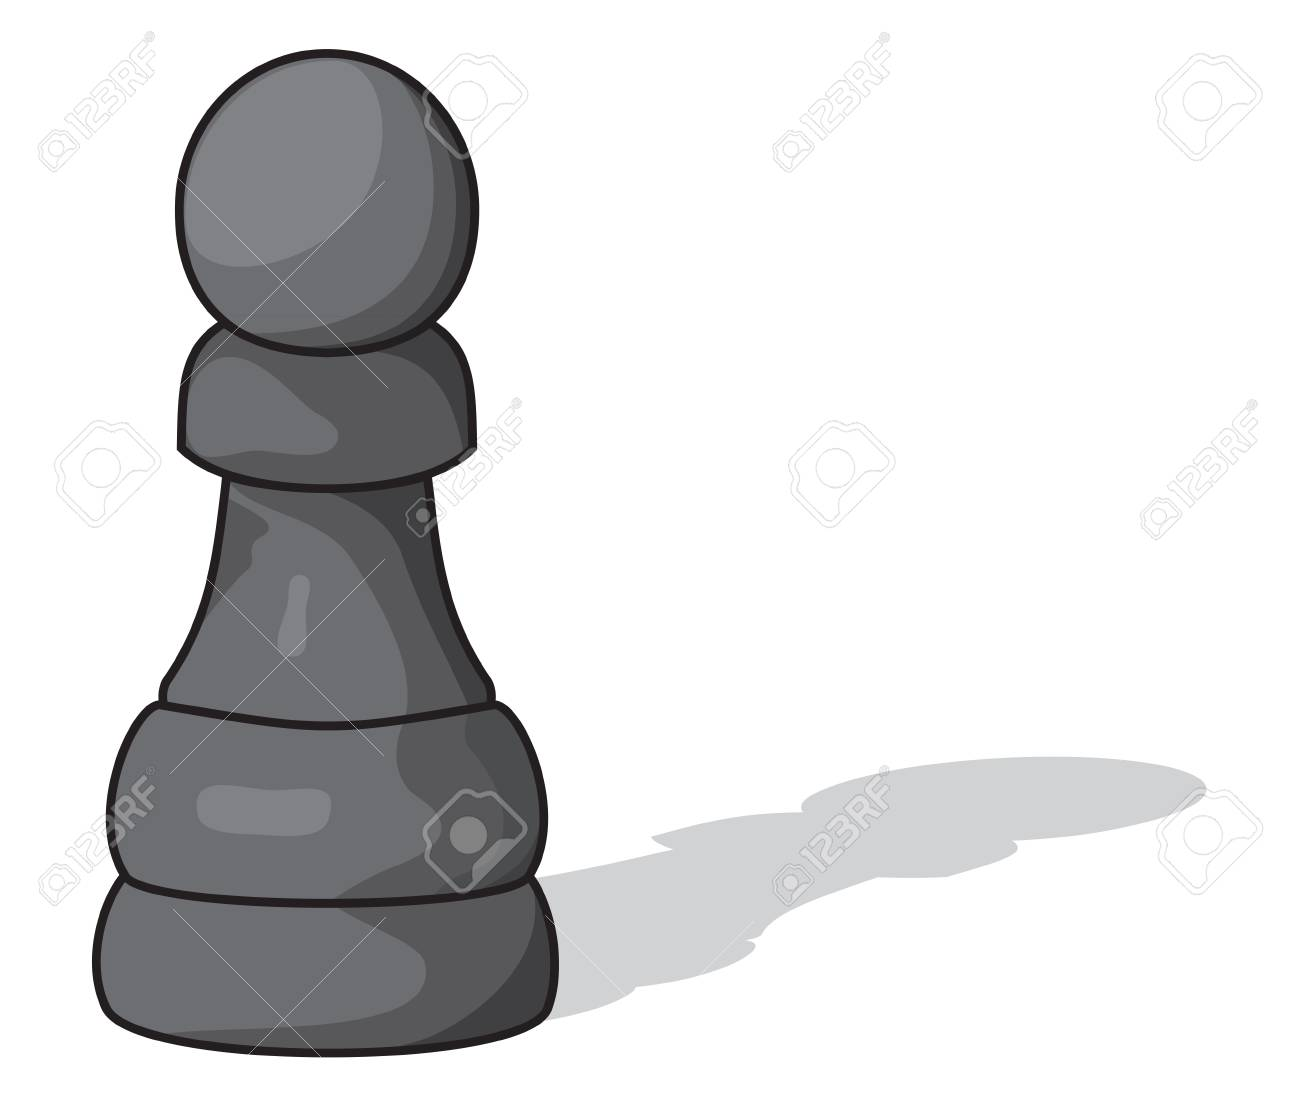 pawn isolated on white background Stock Vector - 18690044